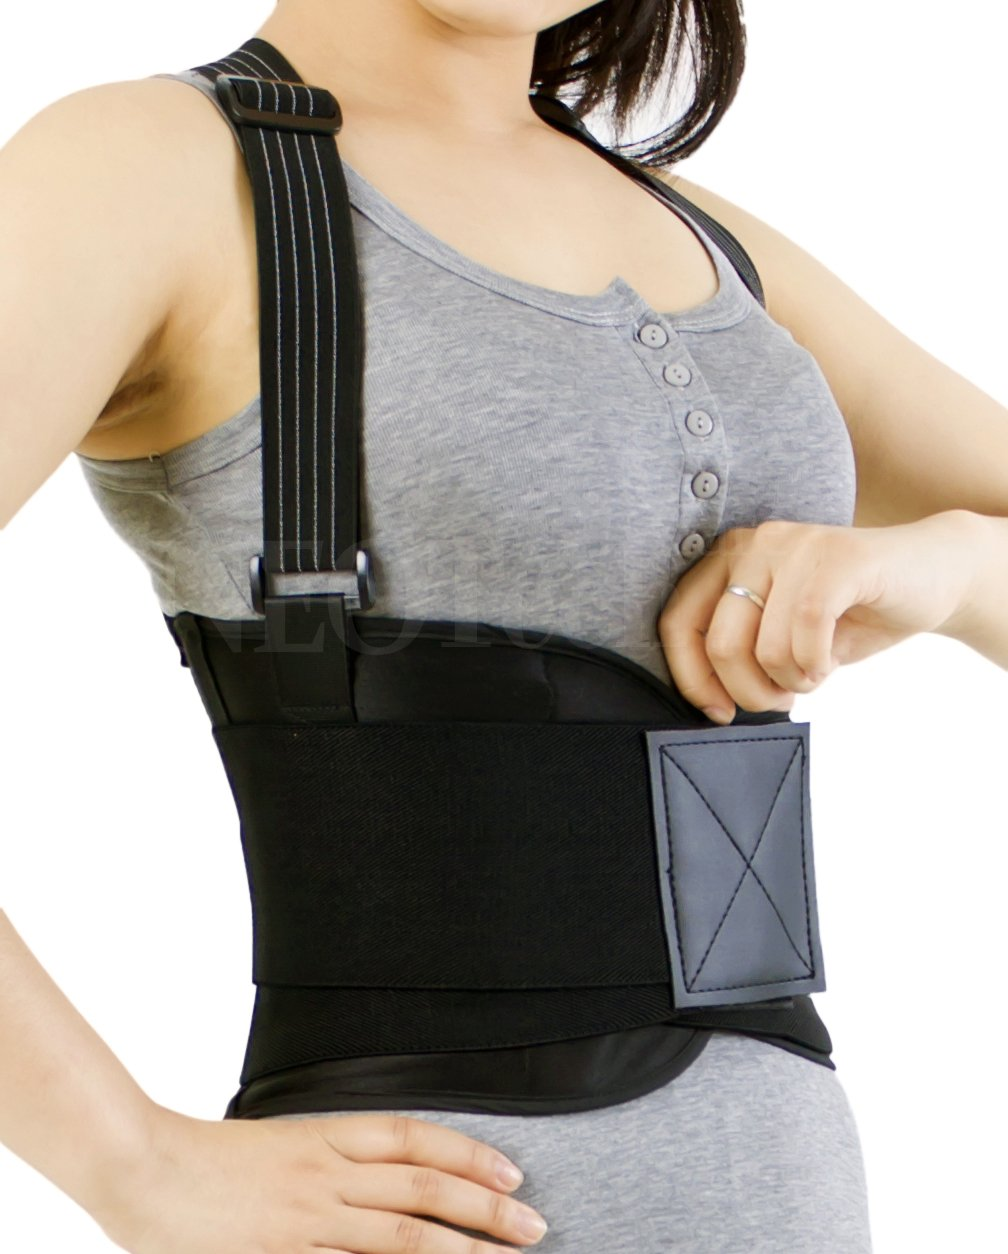 Amazon.com: Back Brace with Suspenders for Women - Adjustable Removable Shoulder Straps Lumbar Support Belt Lower Pain, Work, Lifting, Exercise,